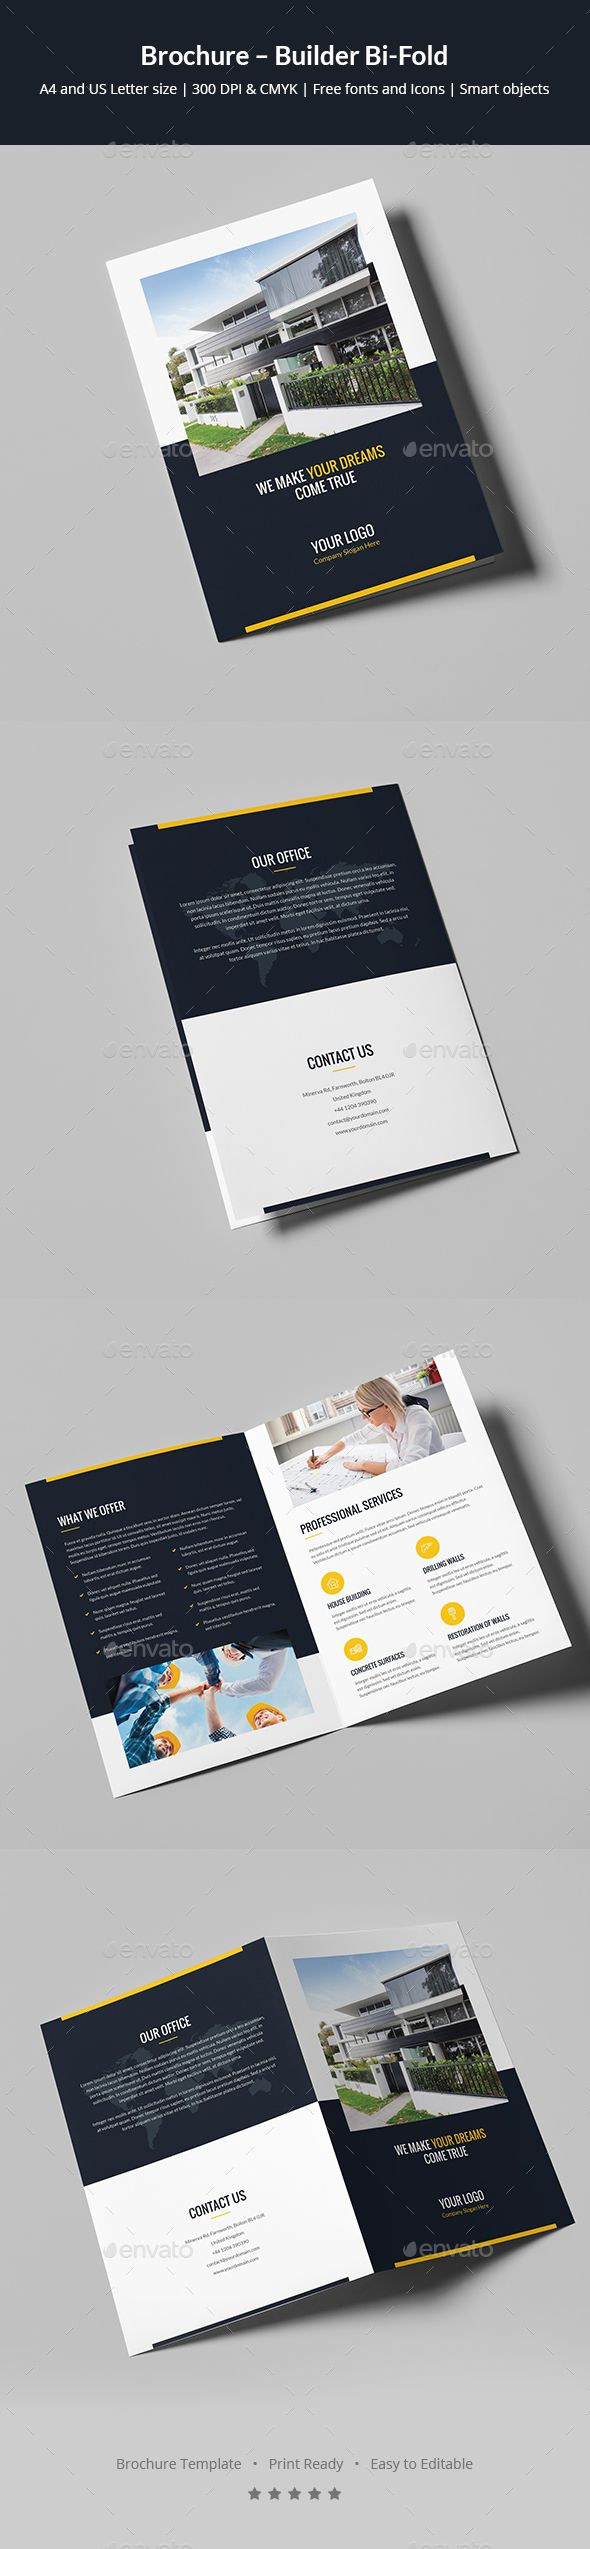 brochure builder bi fold brochures brochure template and template